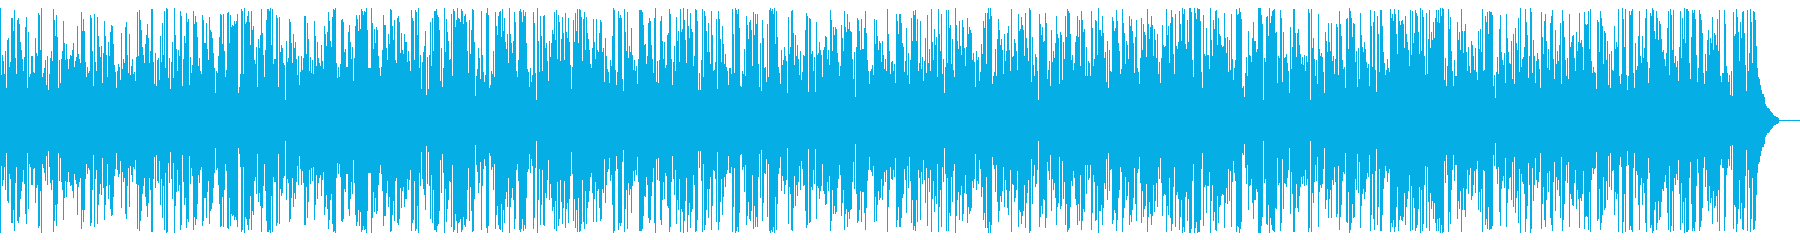 Fast cool fashionable jazz piano BGM's reproduced waveform